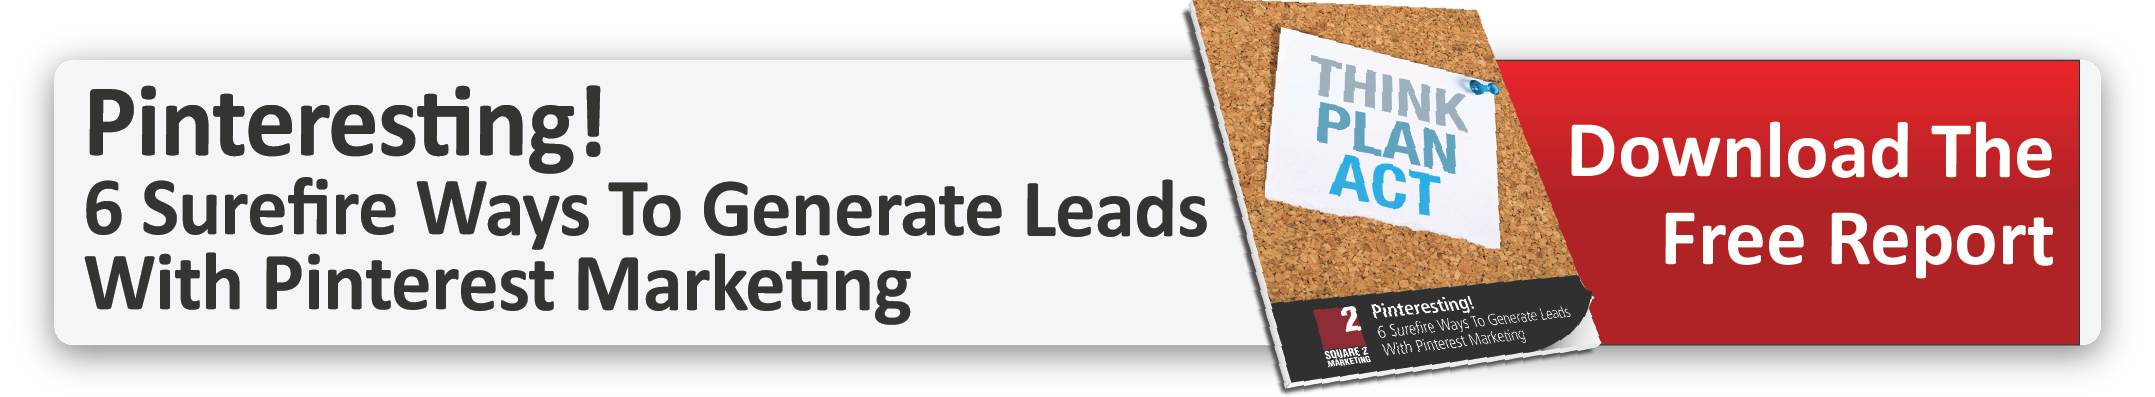 Pinteresting! 6 Surefire Ways To Generate Leads - Download now